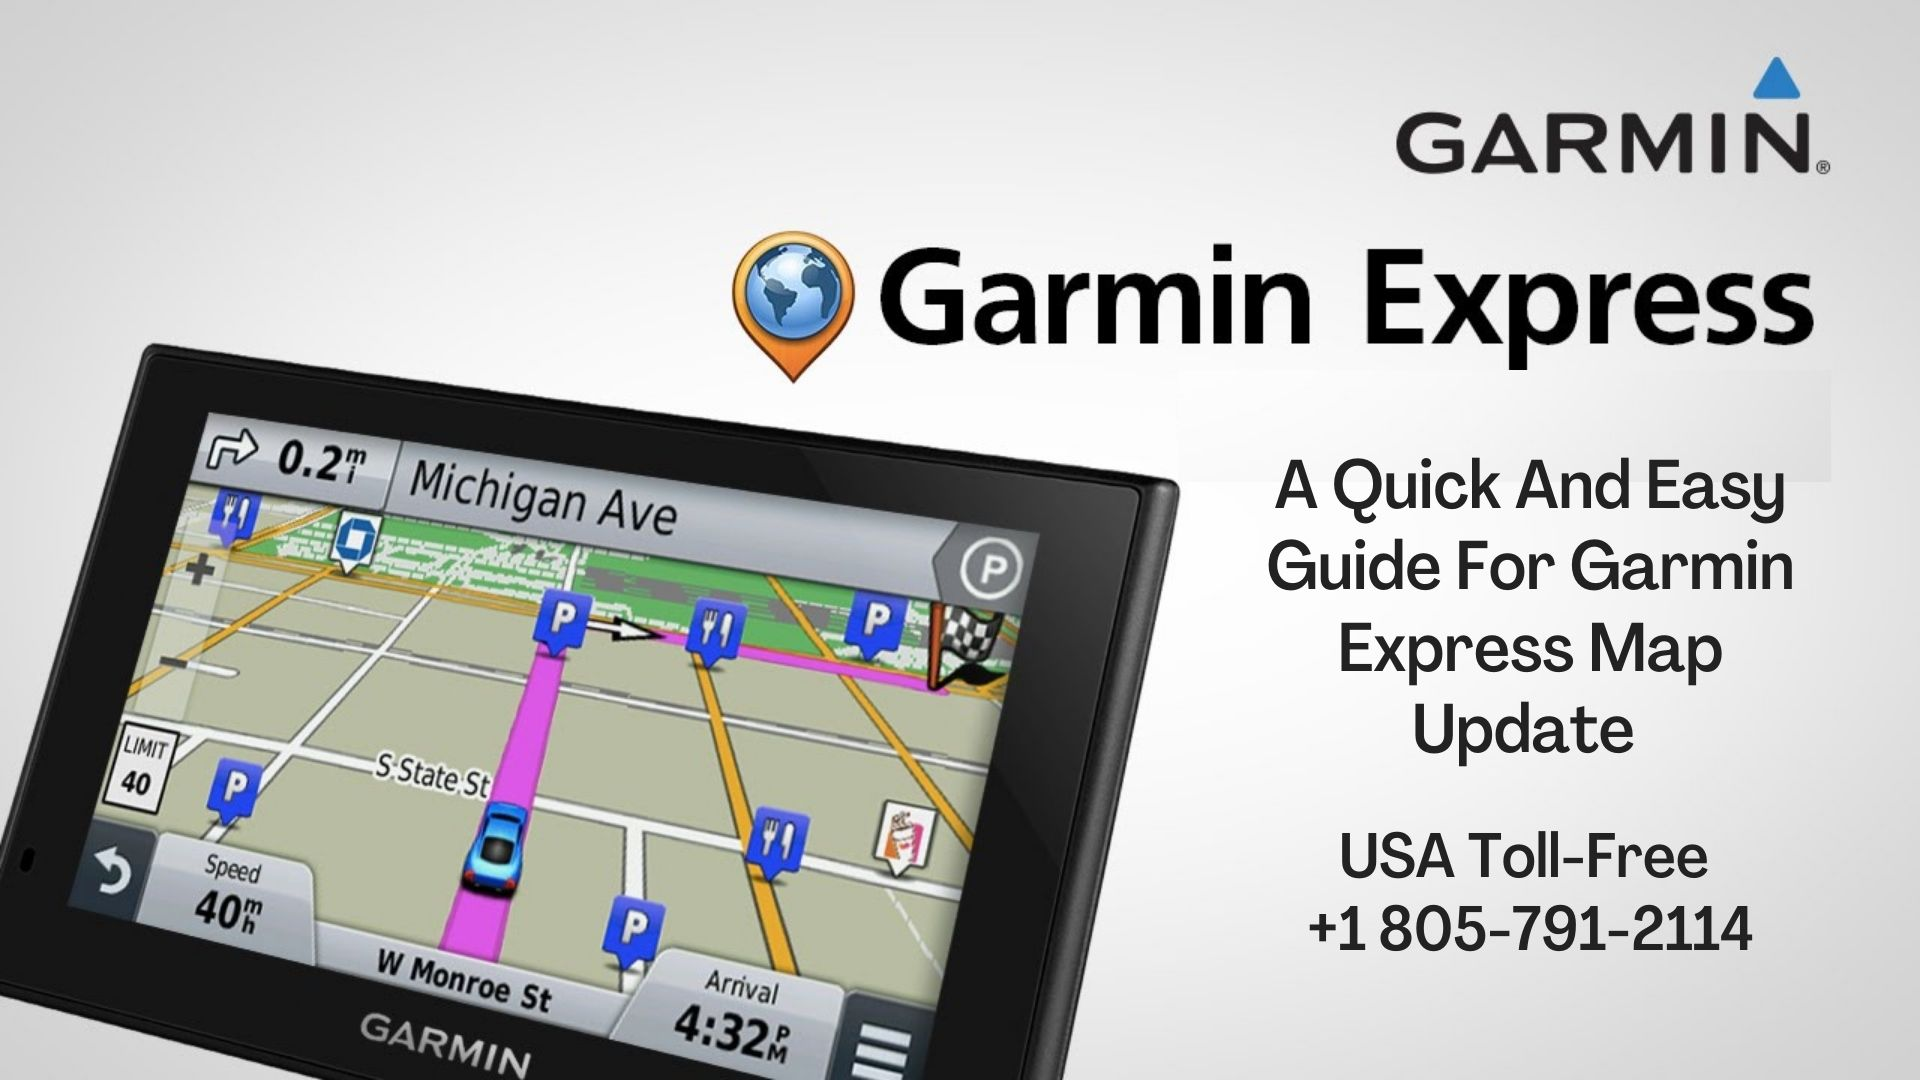 A Quick And Easy Guide For Garmin Express Map Update